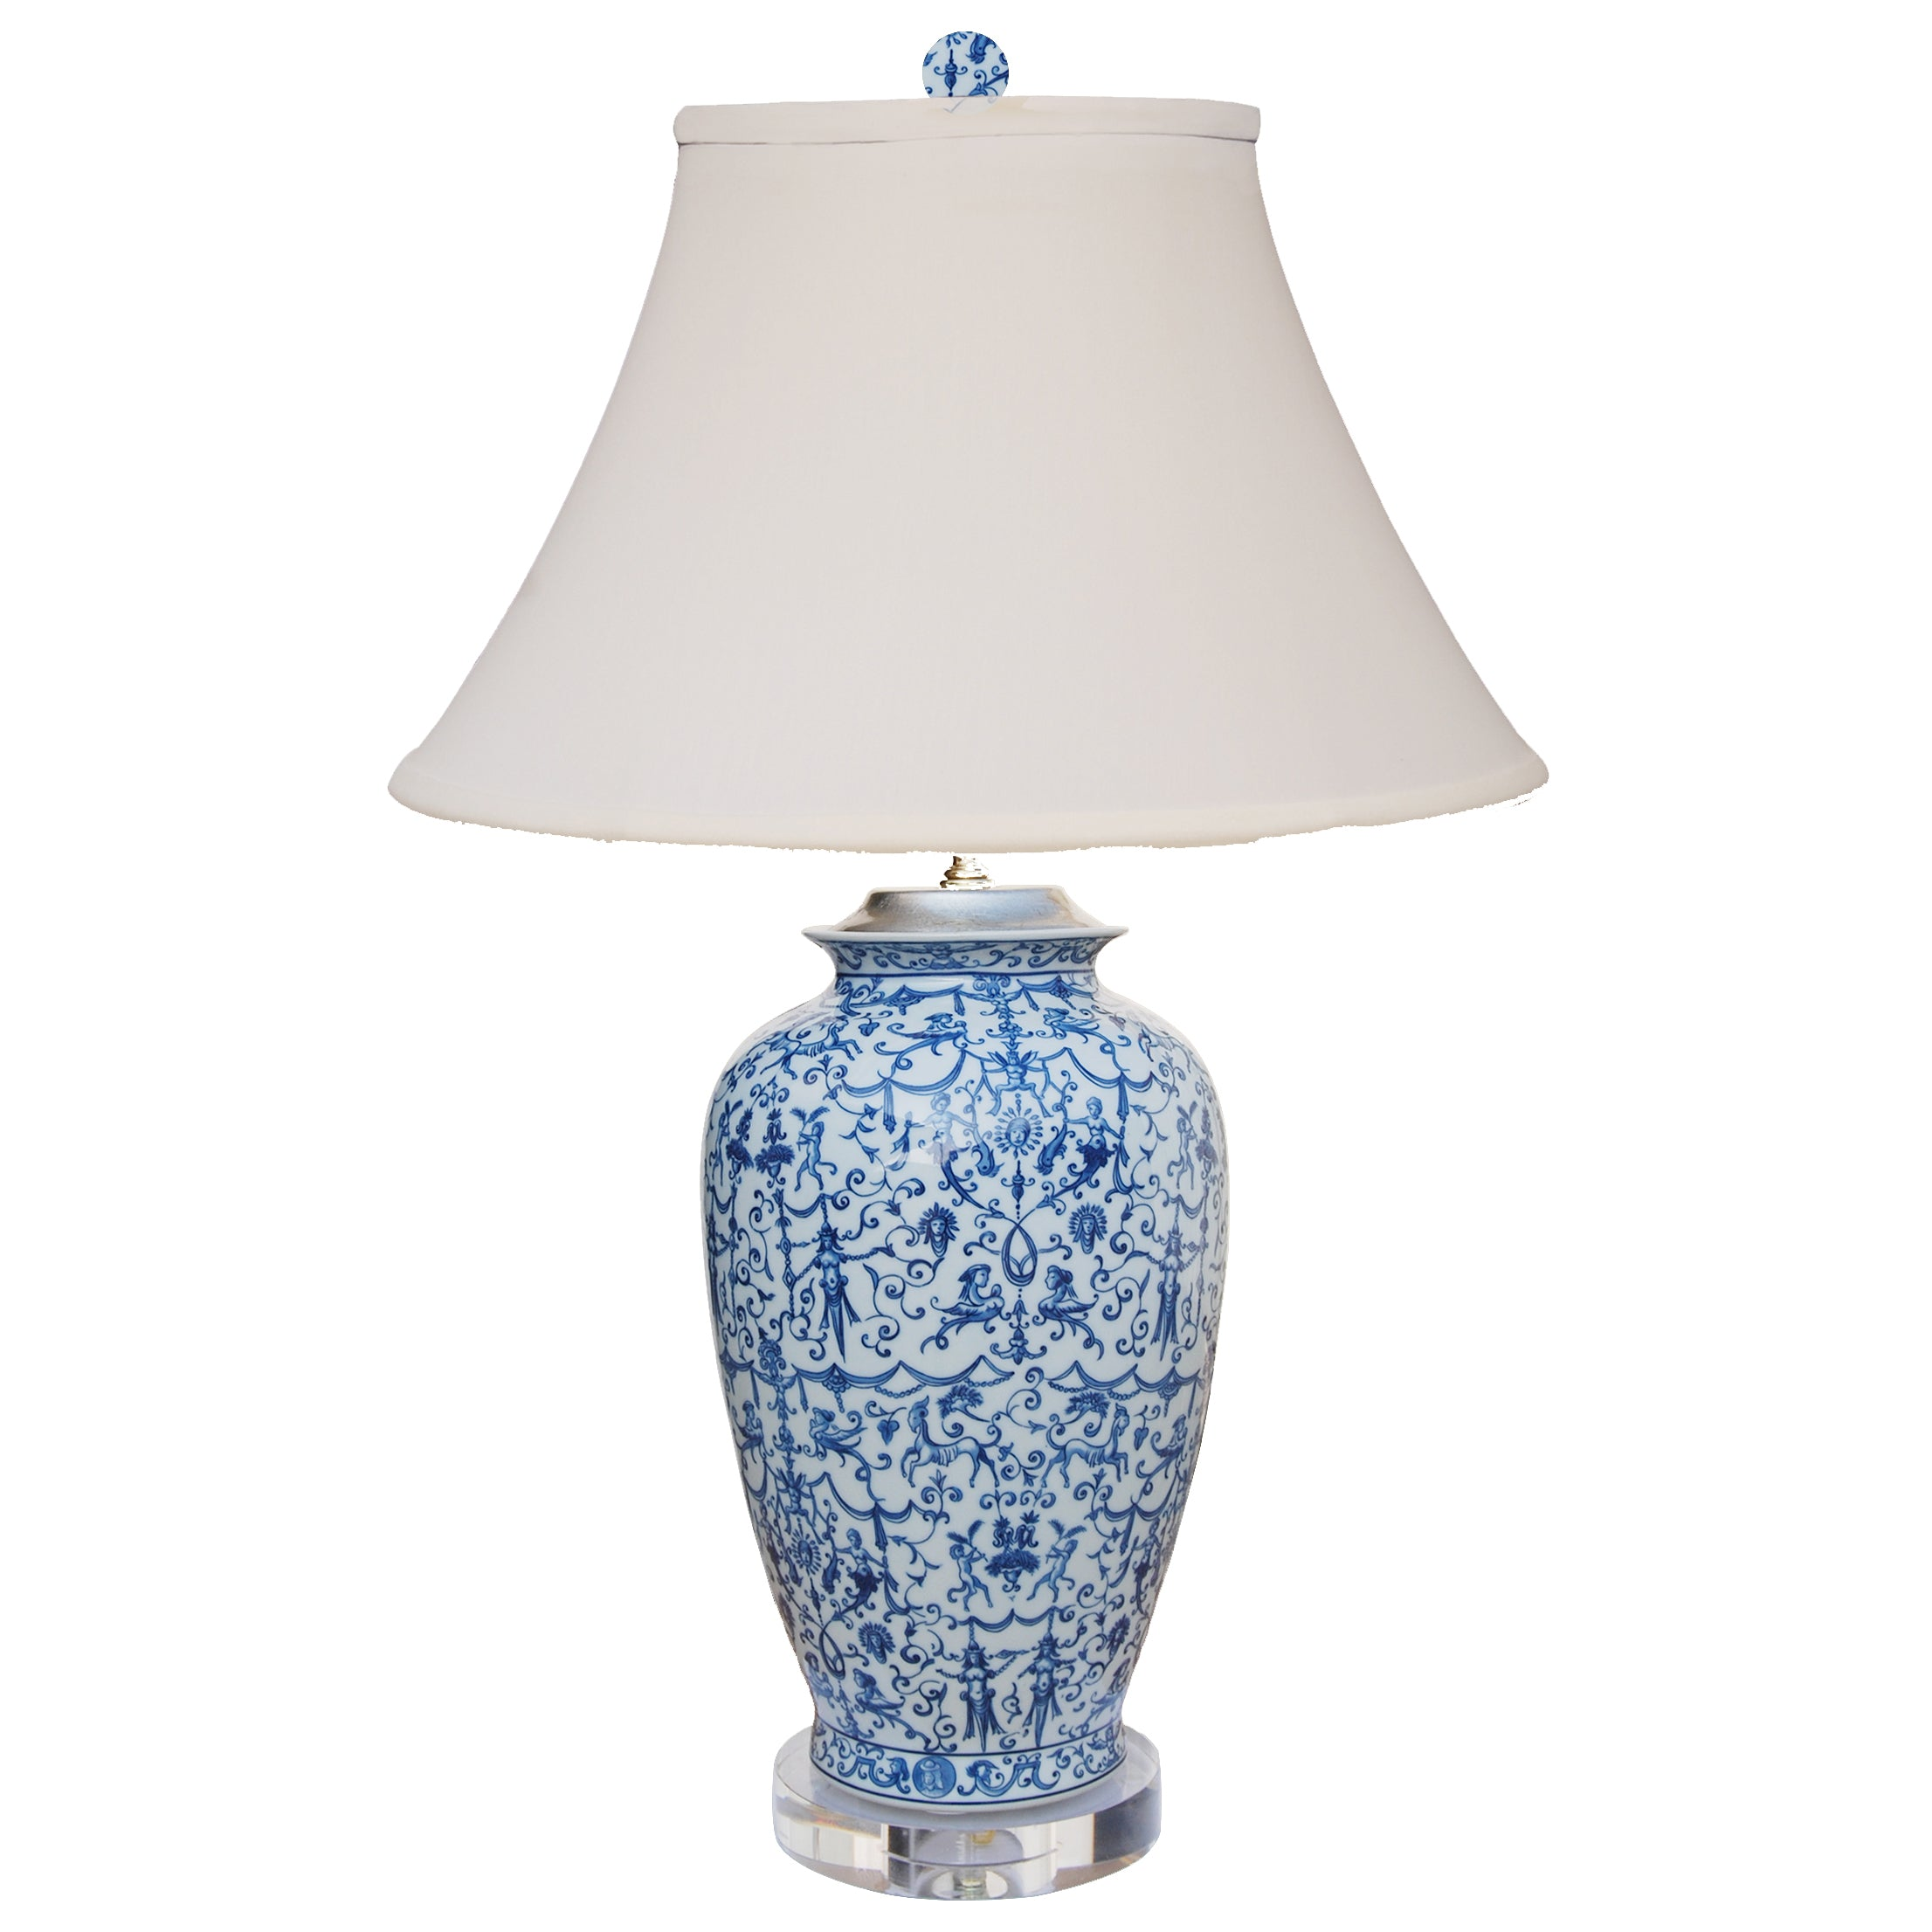 Oriental Blue & White Table Lamp with Crystal Base